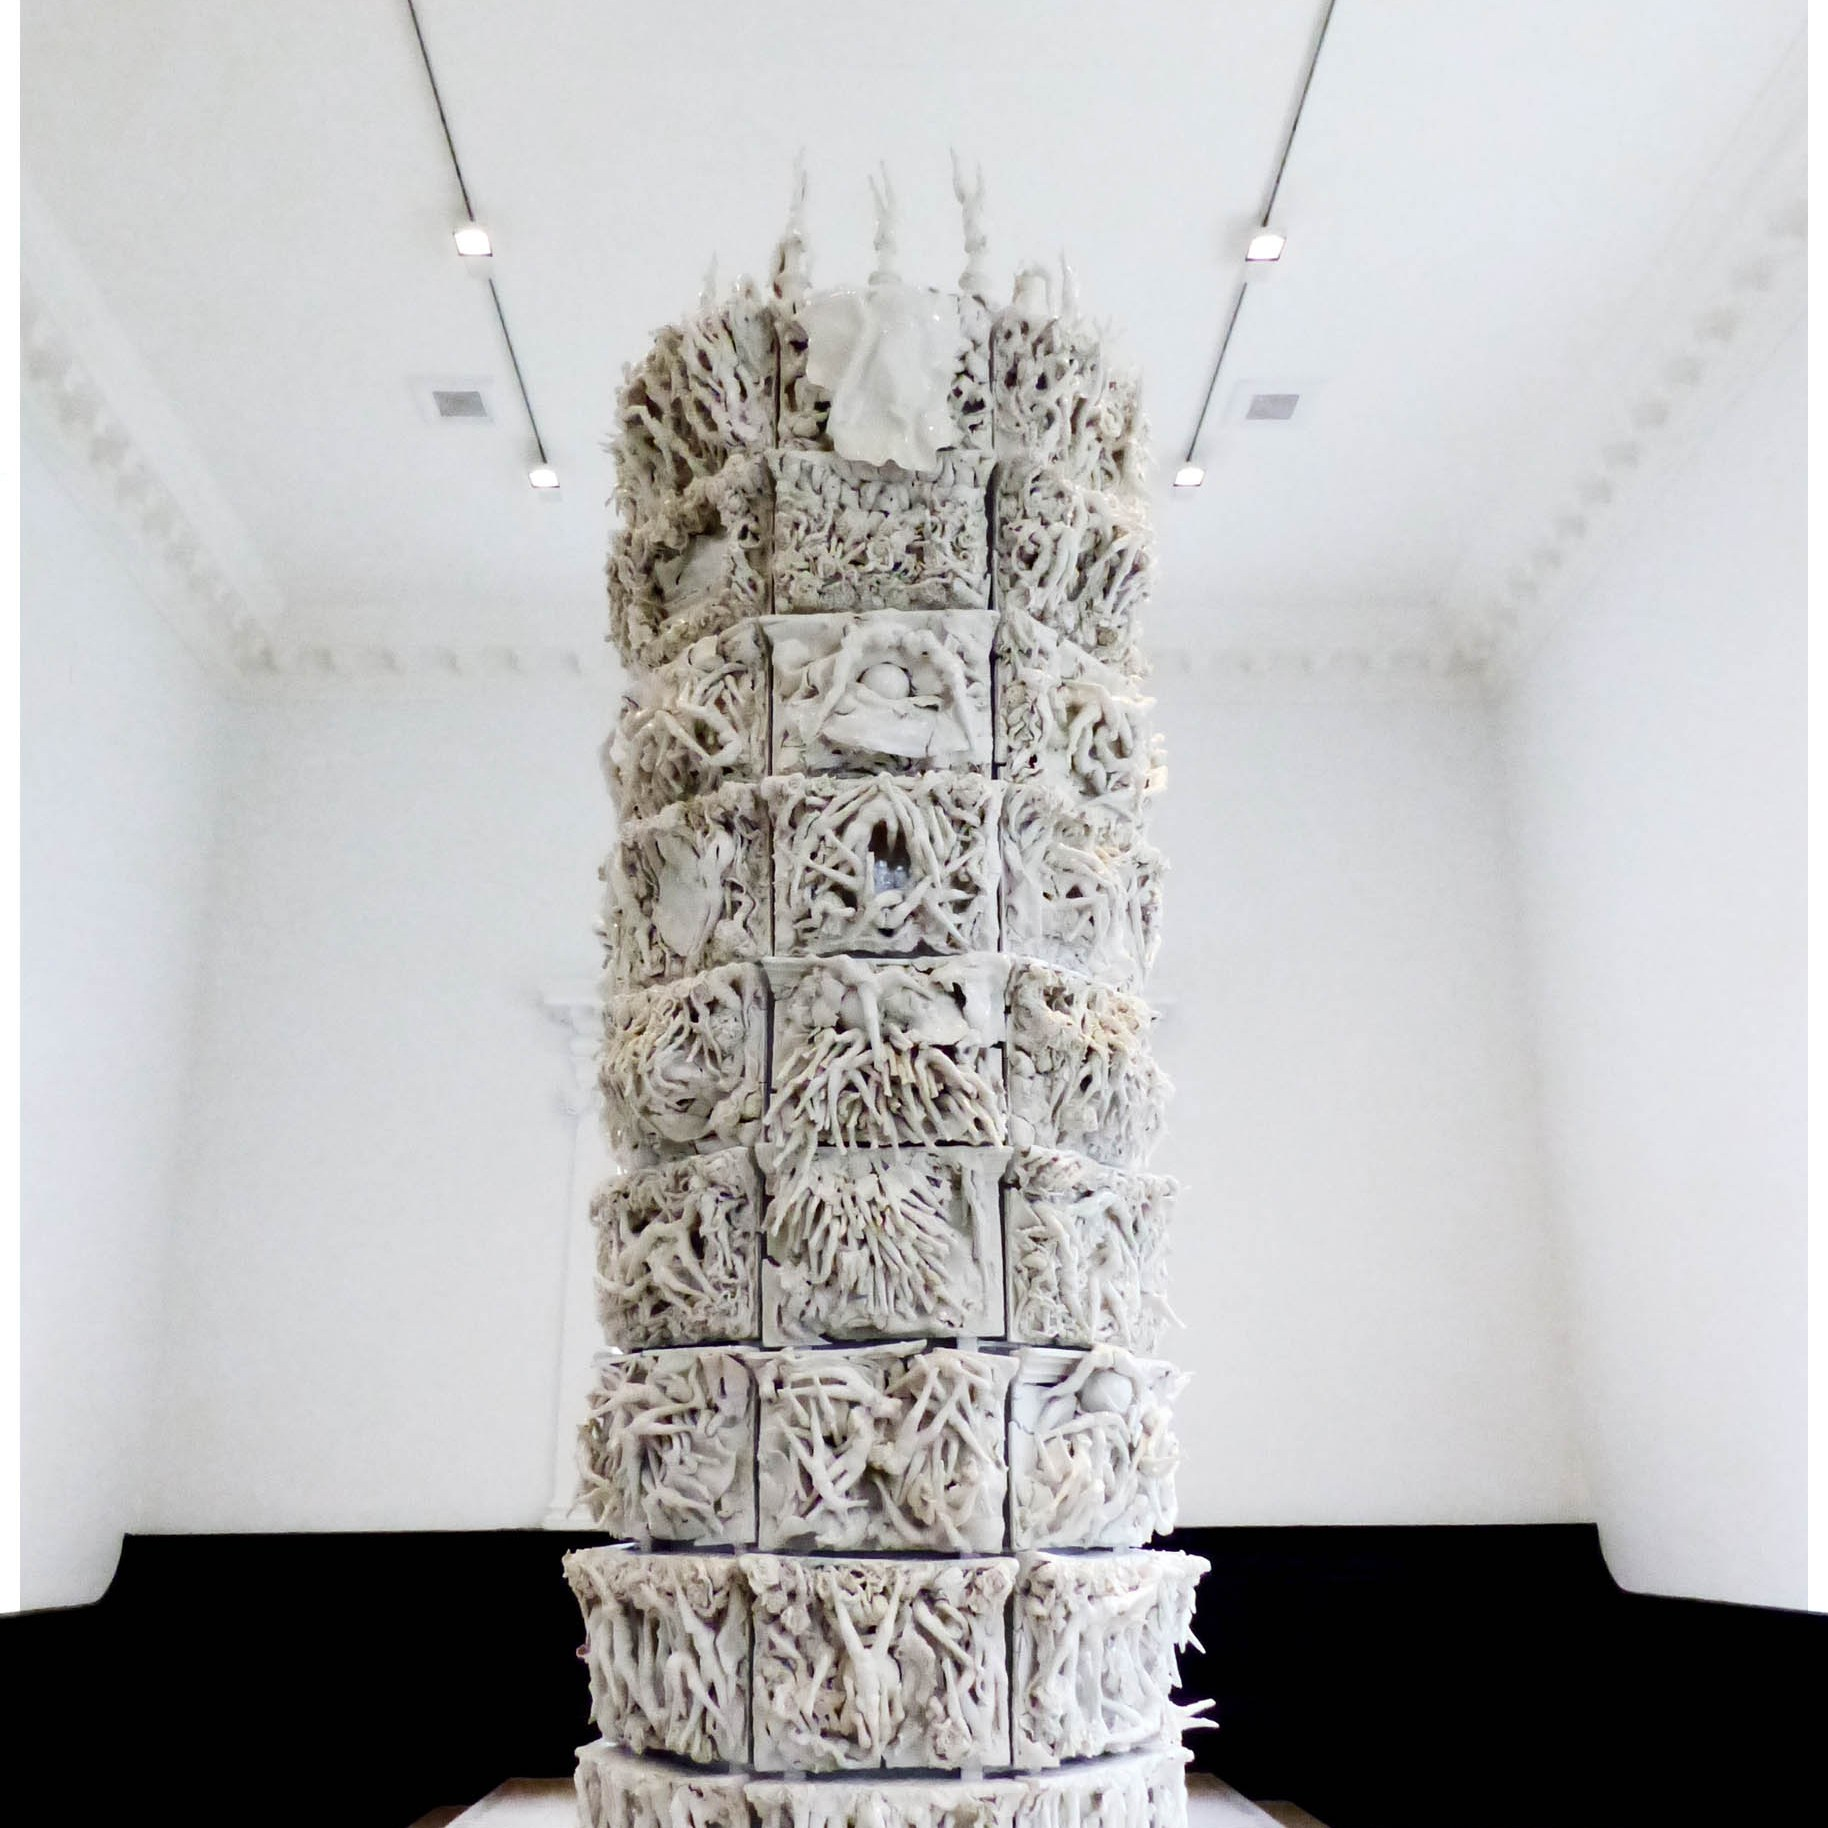 Tall column ceramic white sculpture with many legs and flowers entwined